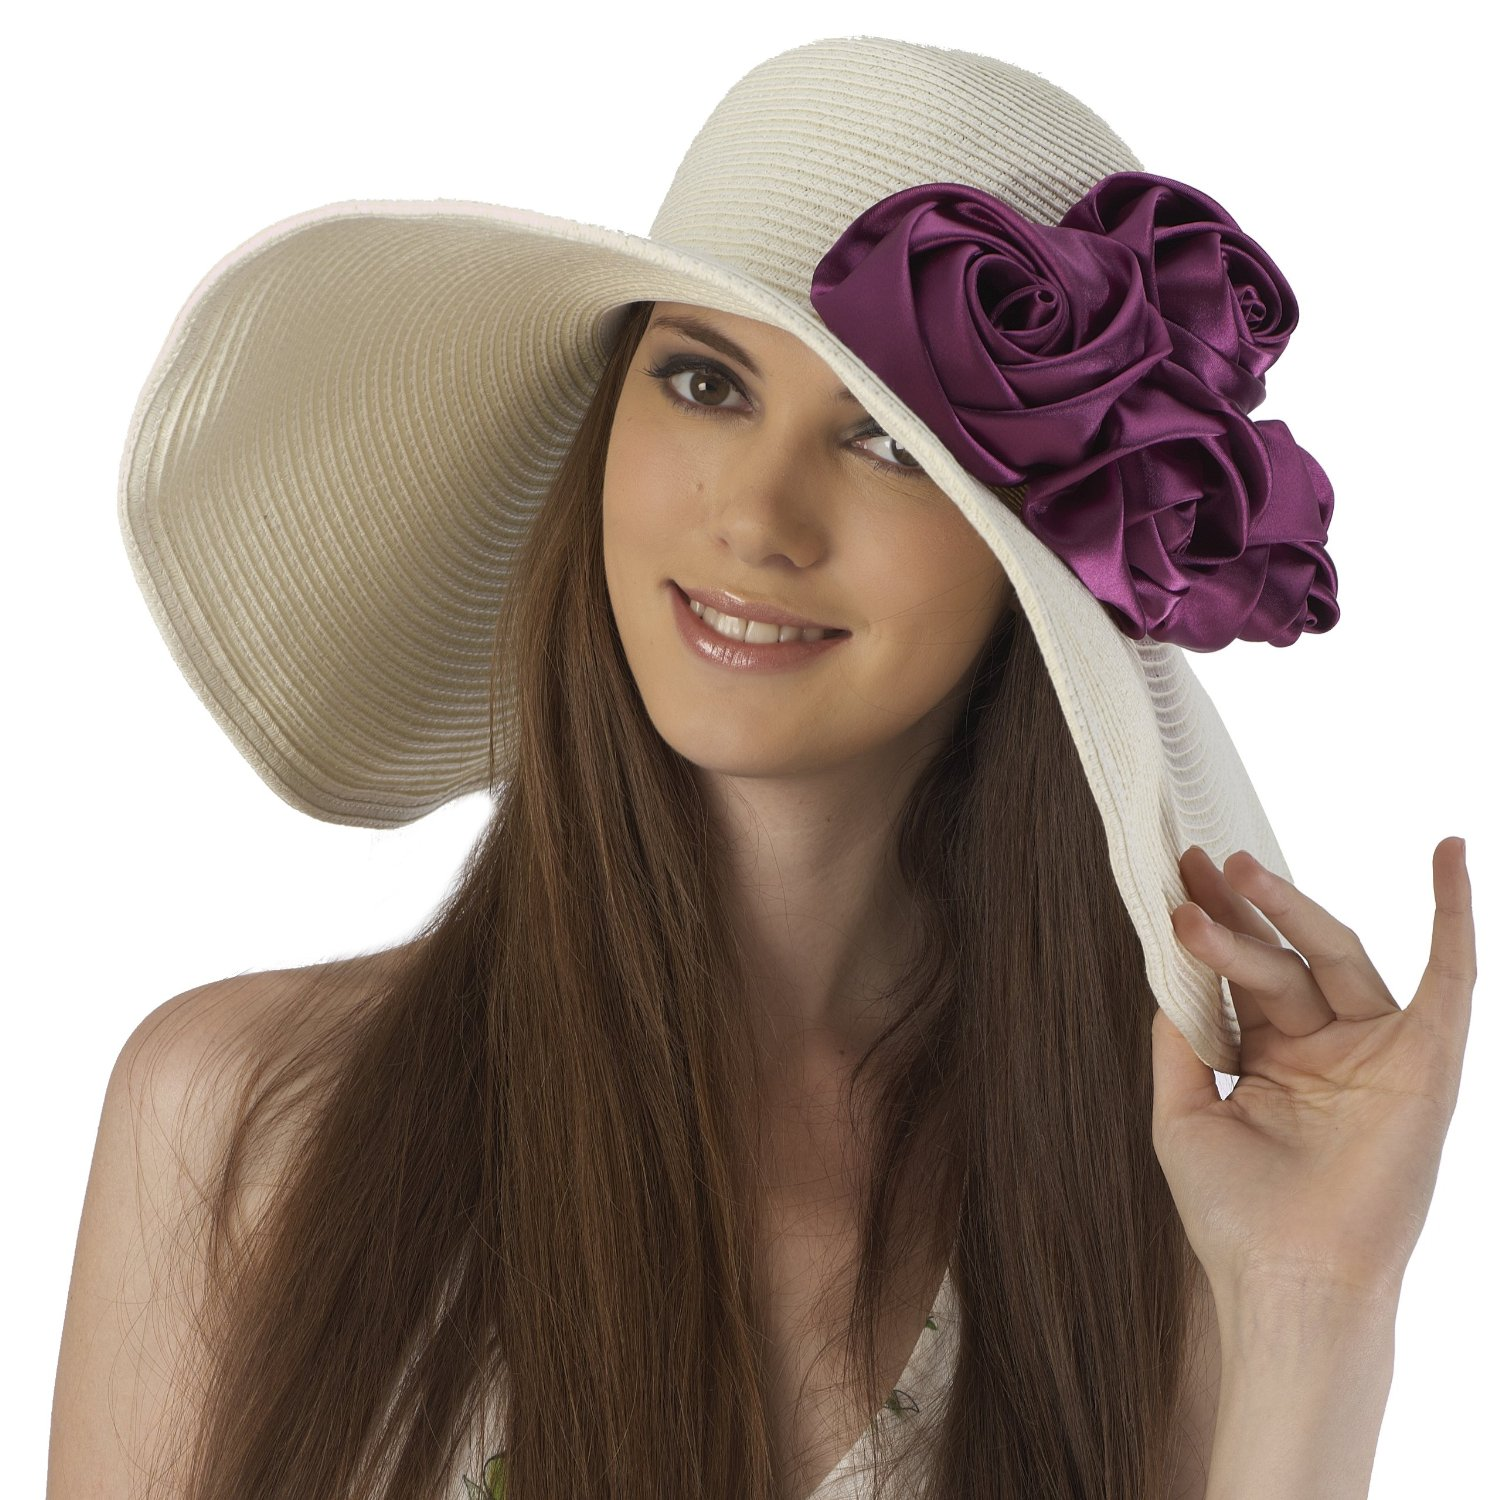 967d9ae2e970a Awesome Fashion 2012  Awesome Stylish Summer Hats For Women 2012